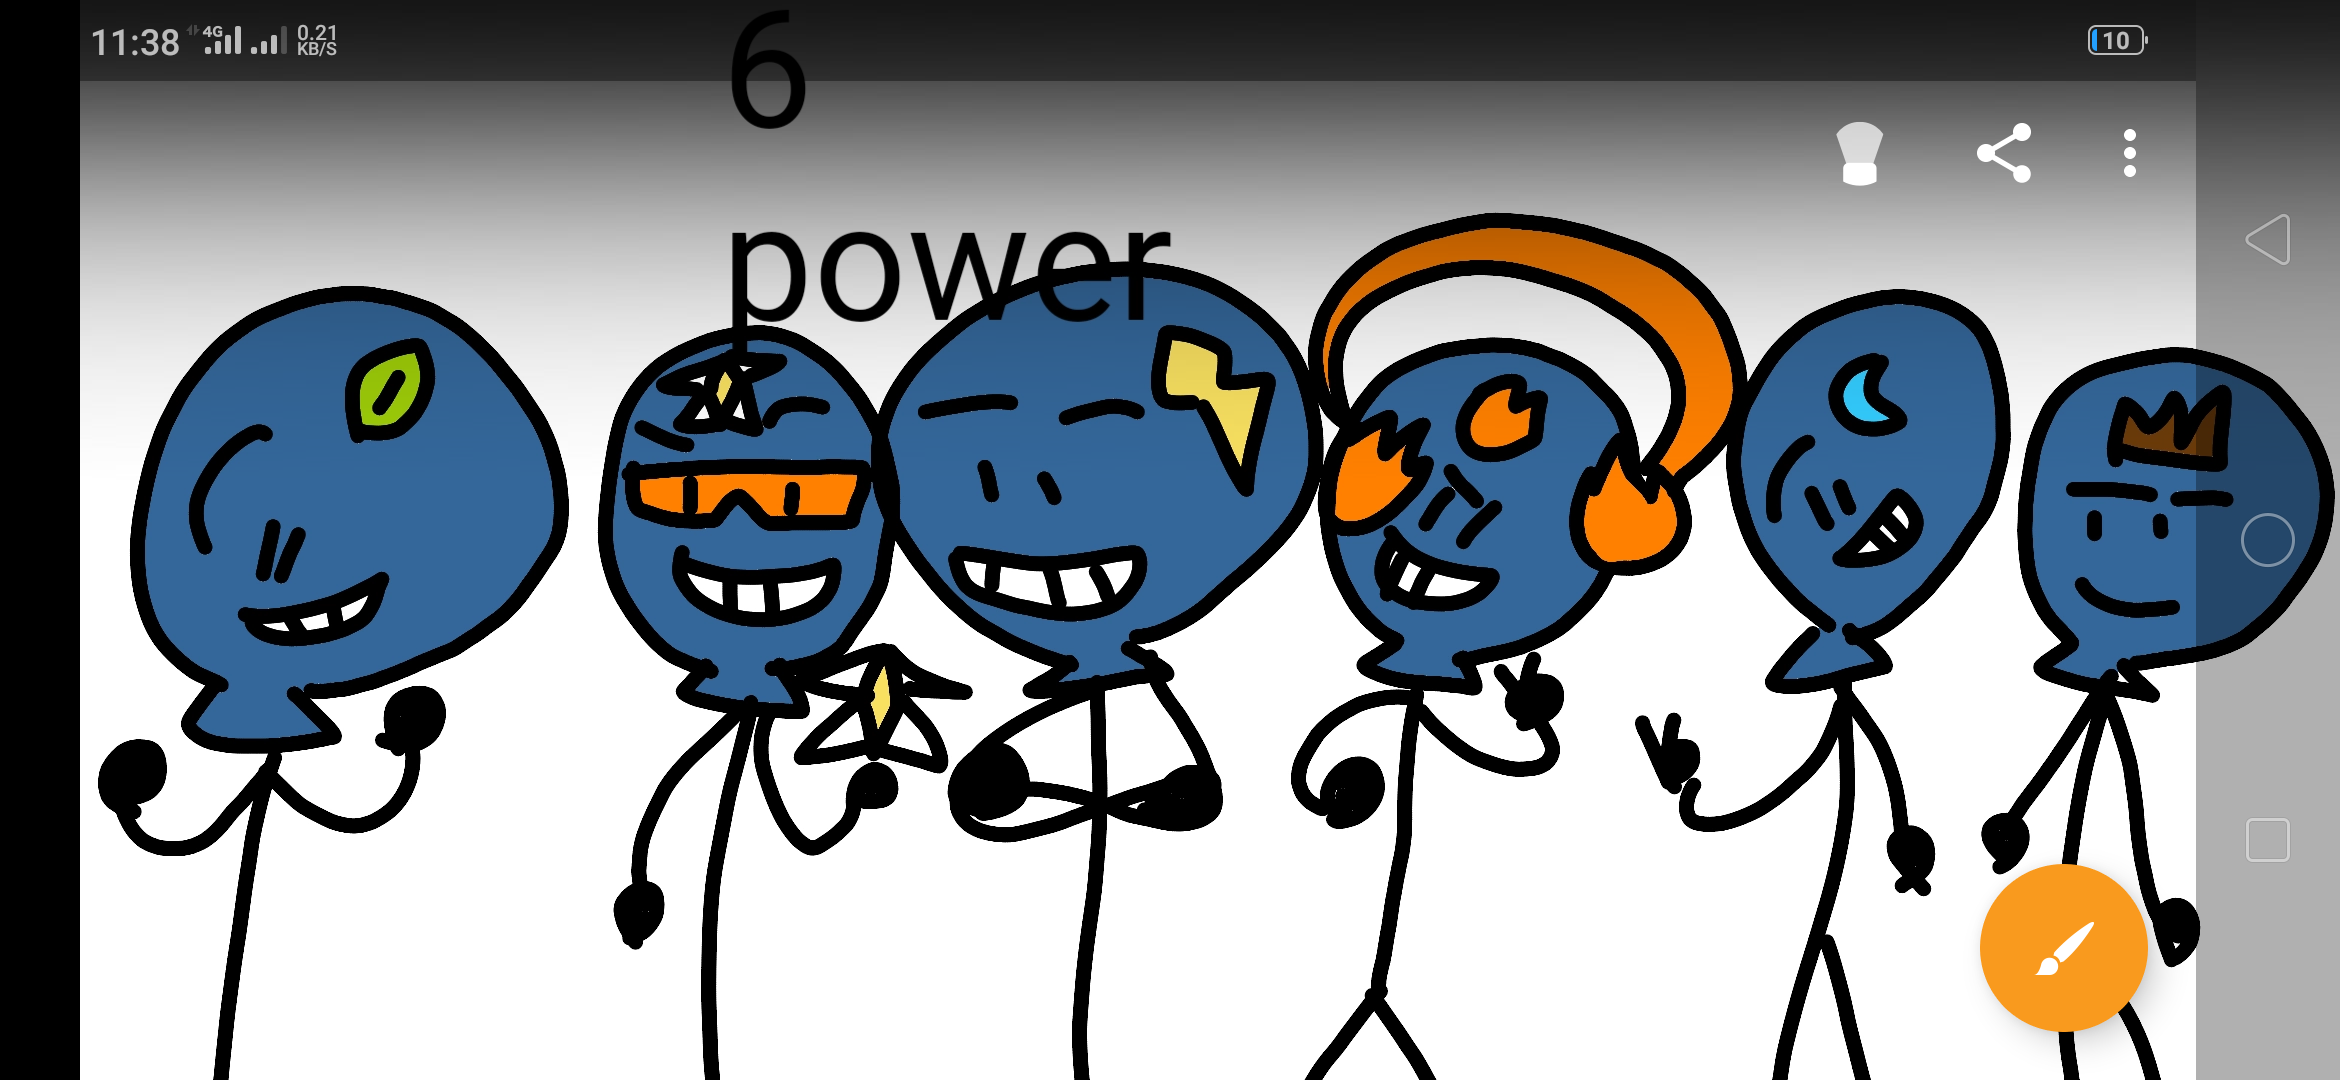 I have 6 power